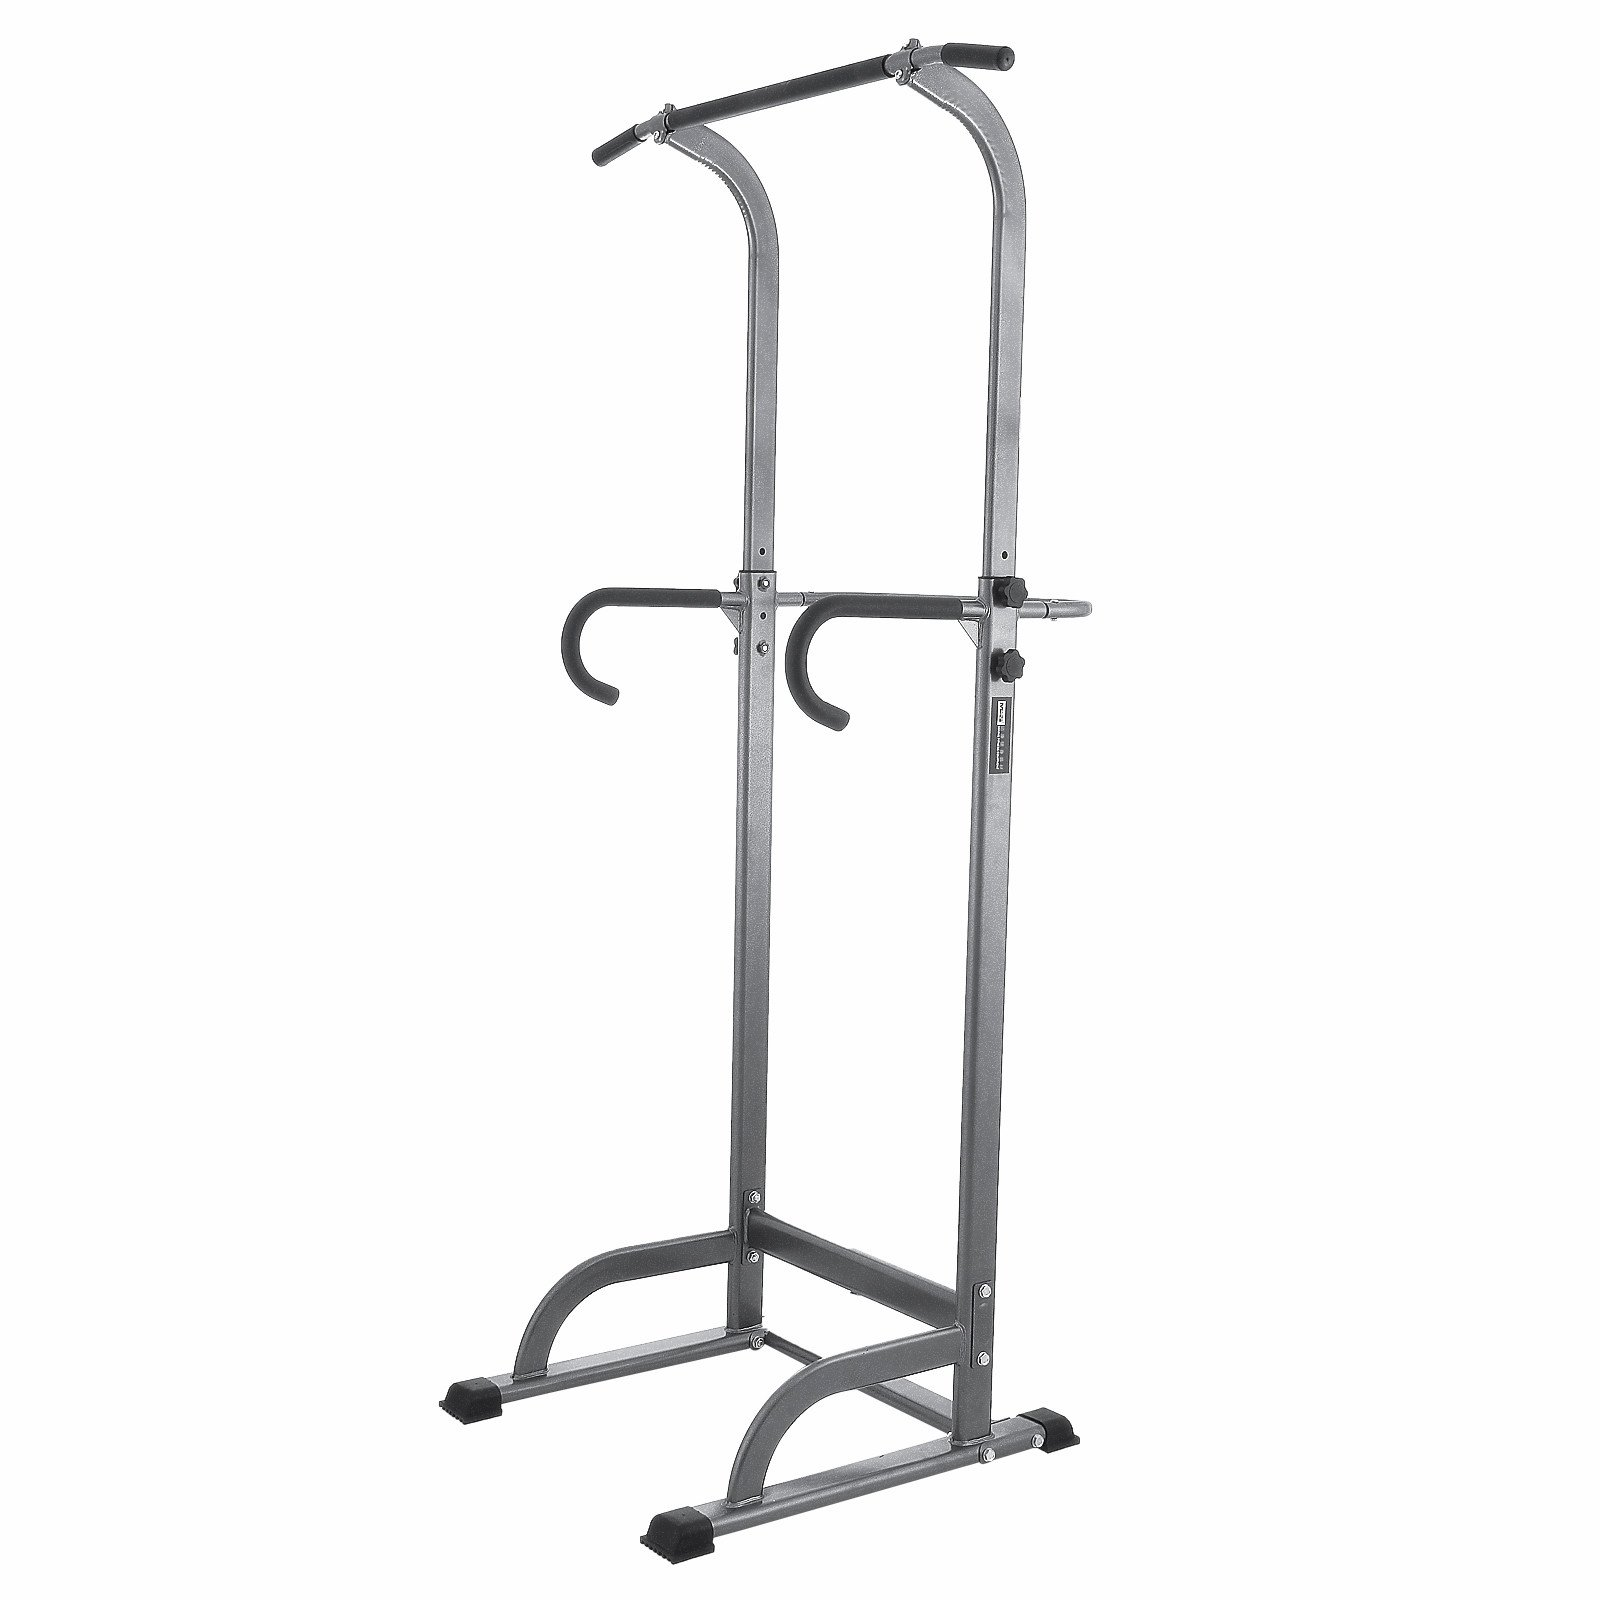 Popsport 330/440LBS Power Tower Station Series Multi-Station Power Tower Adjustable Height Dip-Station Workout Pull Up Station for Indoor Home Fitness (MK-4001A Power Tower)